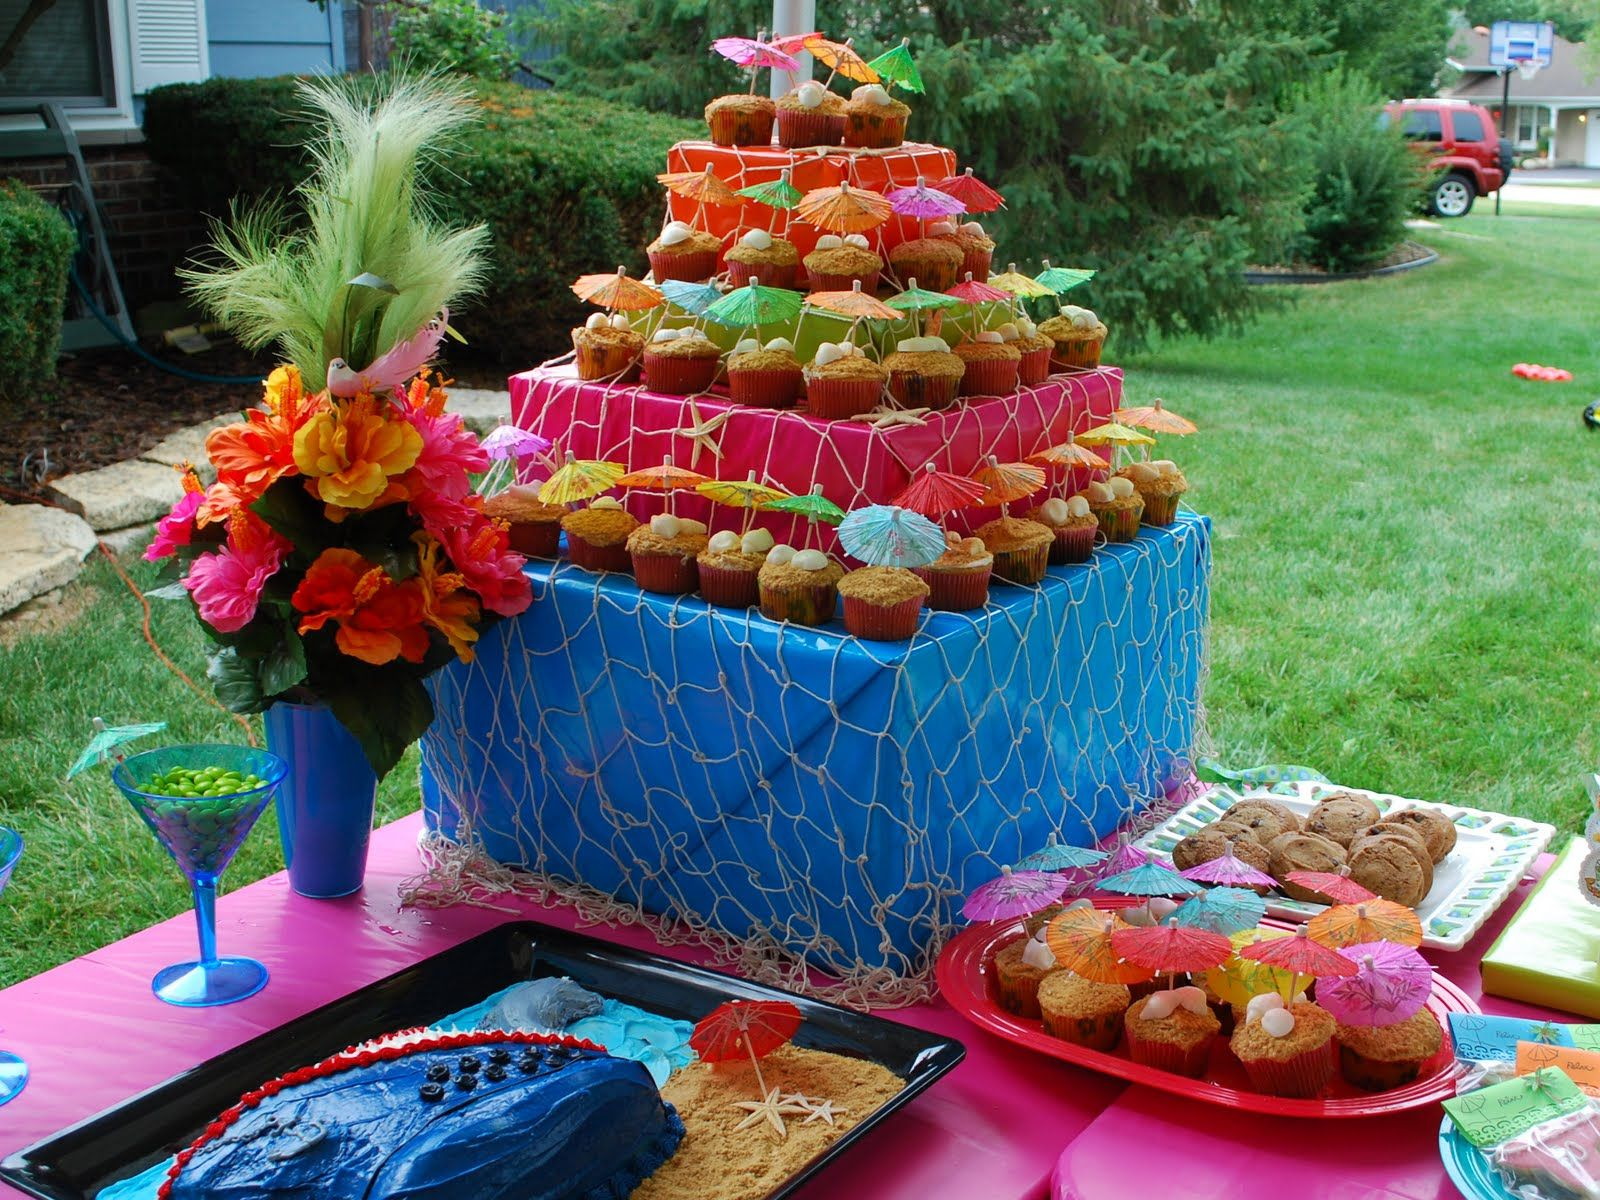 10 Best Caribbean Centerpieces Images On Pinterest: ... ..The Galbraith Tales: Auntie Val's